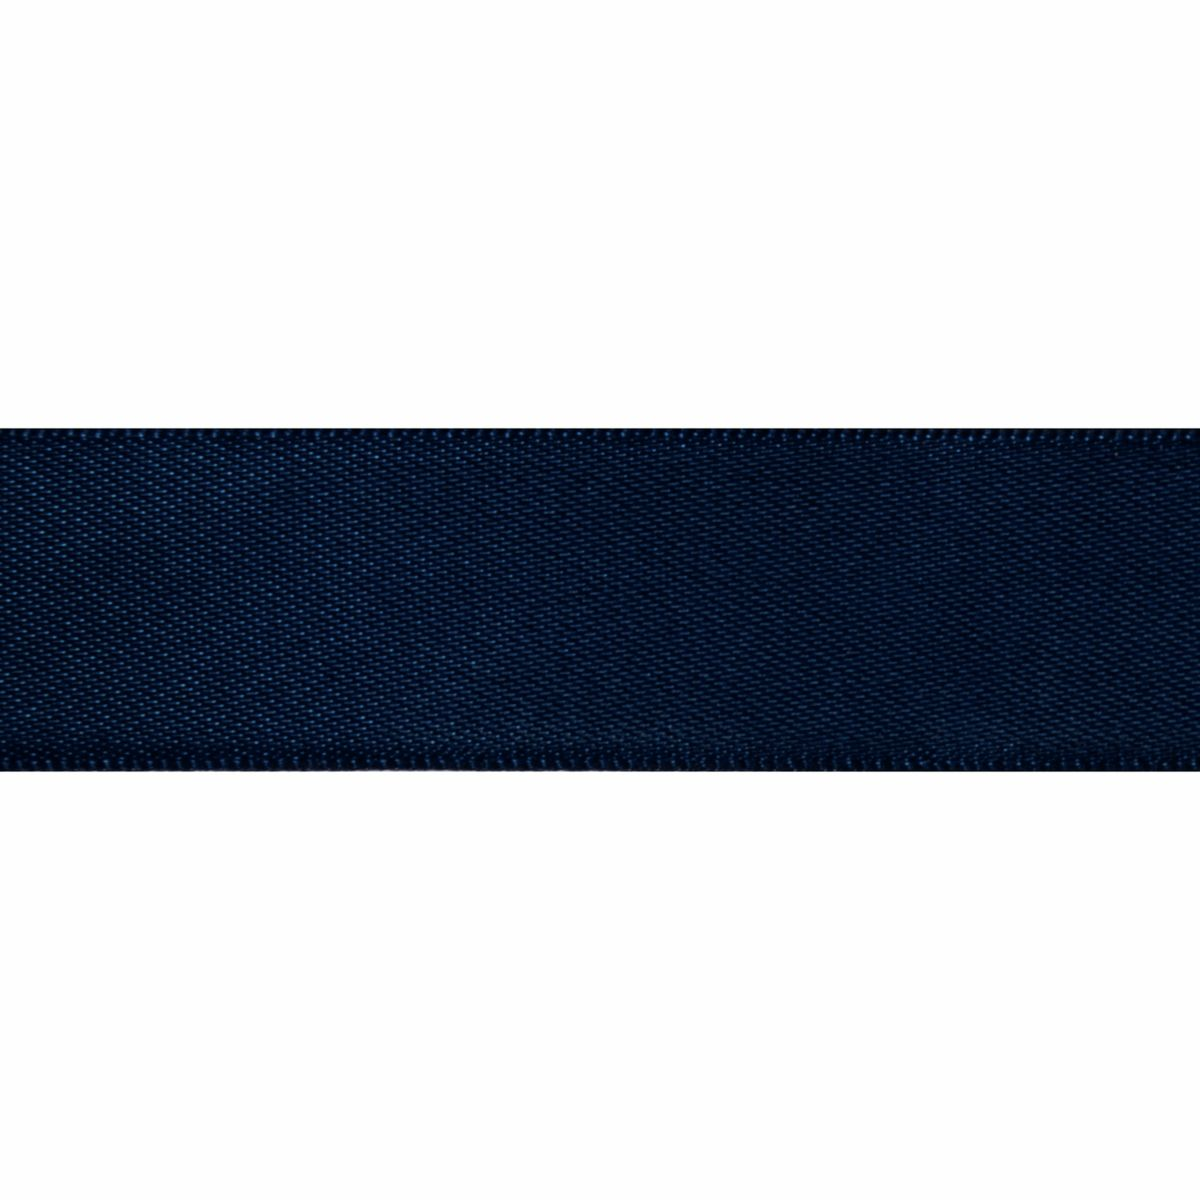 Navy Blue Double Satin Ribbon 5m rolls from 3mm to 36mm wide